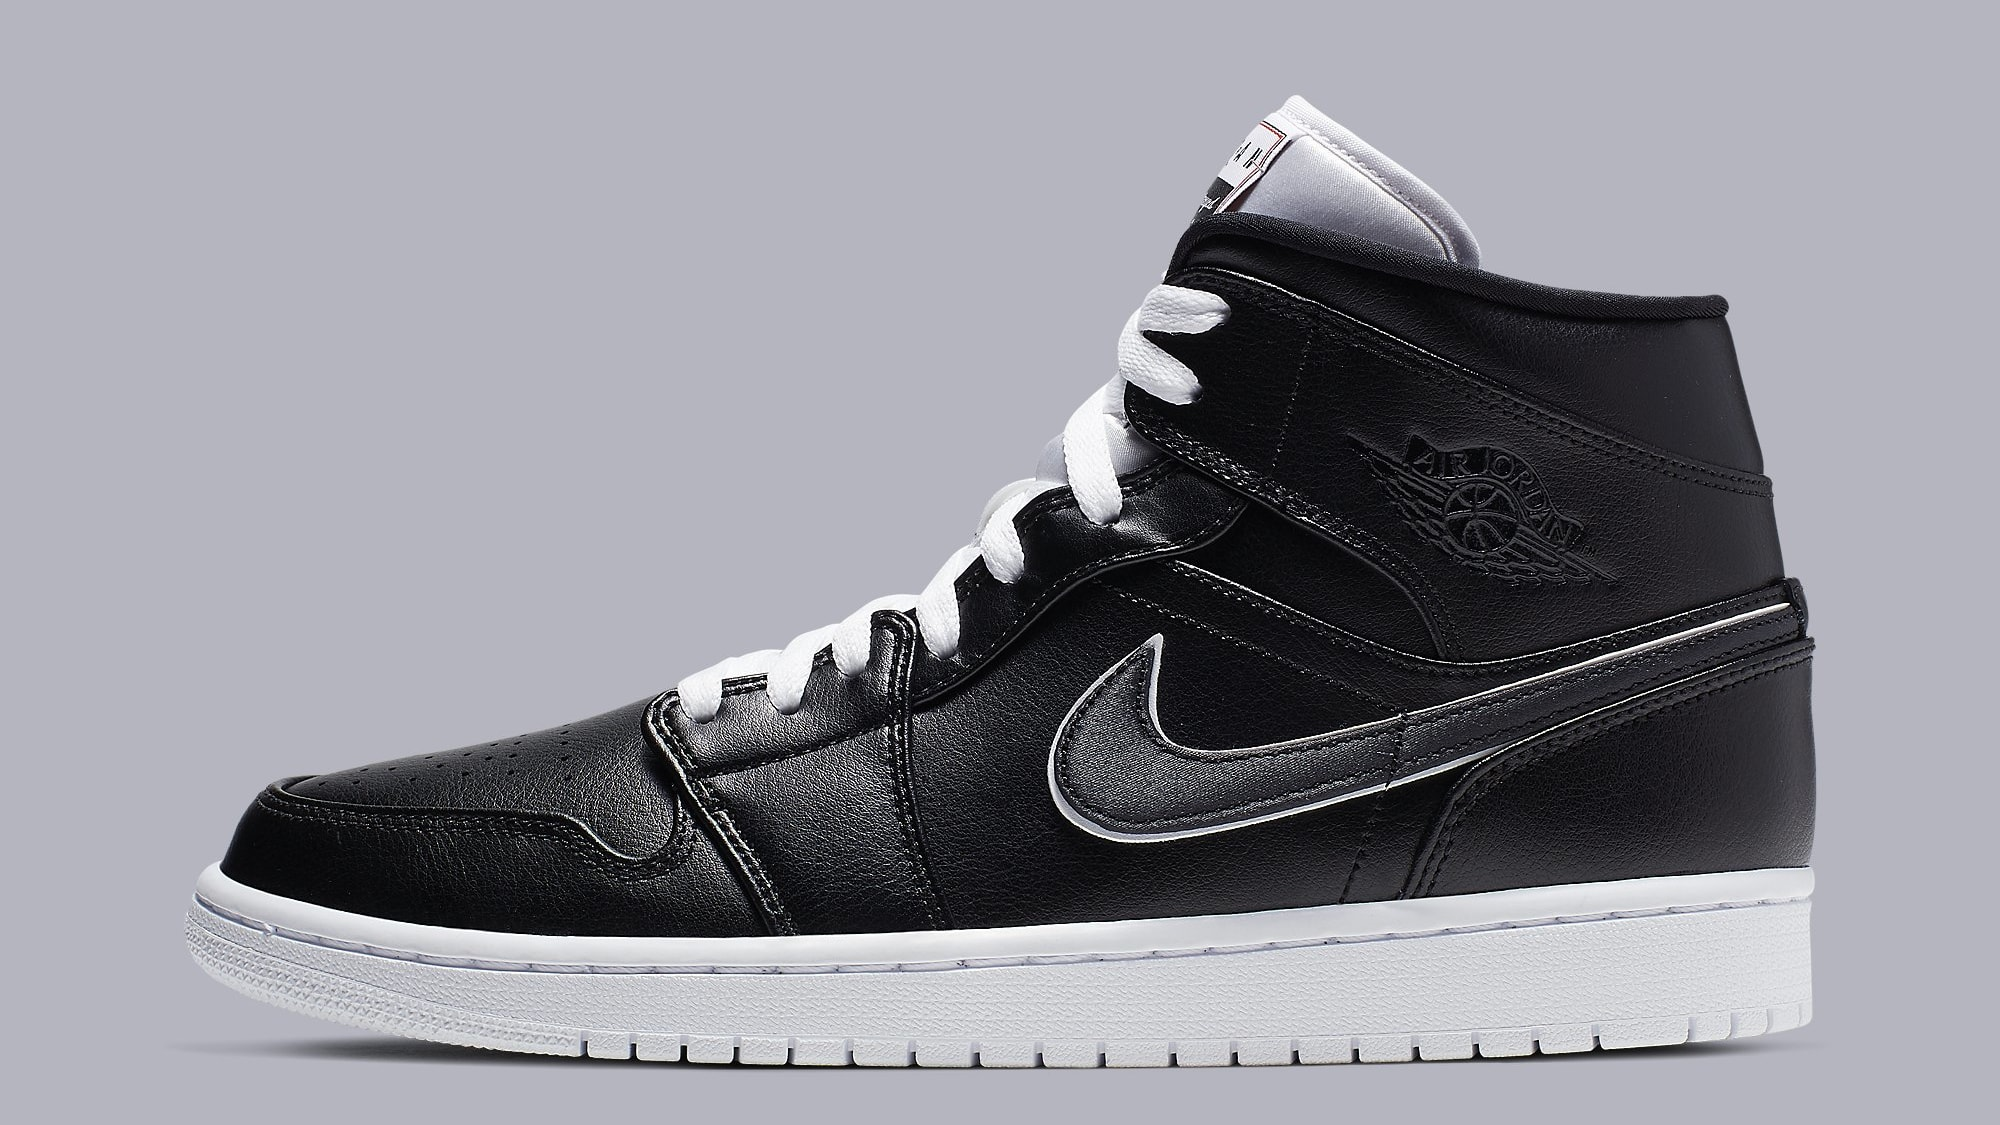 huge discount 4a881 17ba1 Air Jordan 1 Retro Mid 'Maybe I Destroyed the Game' Release ...